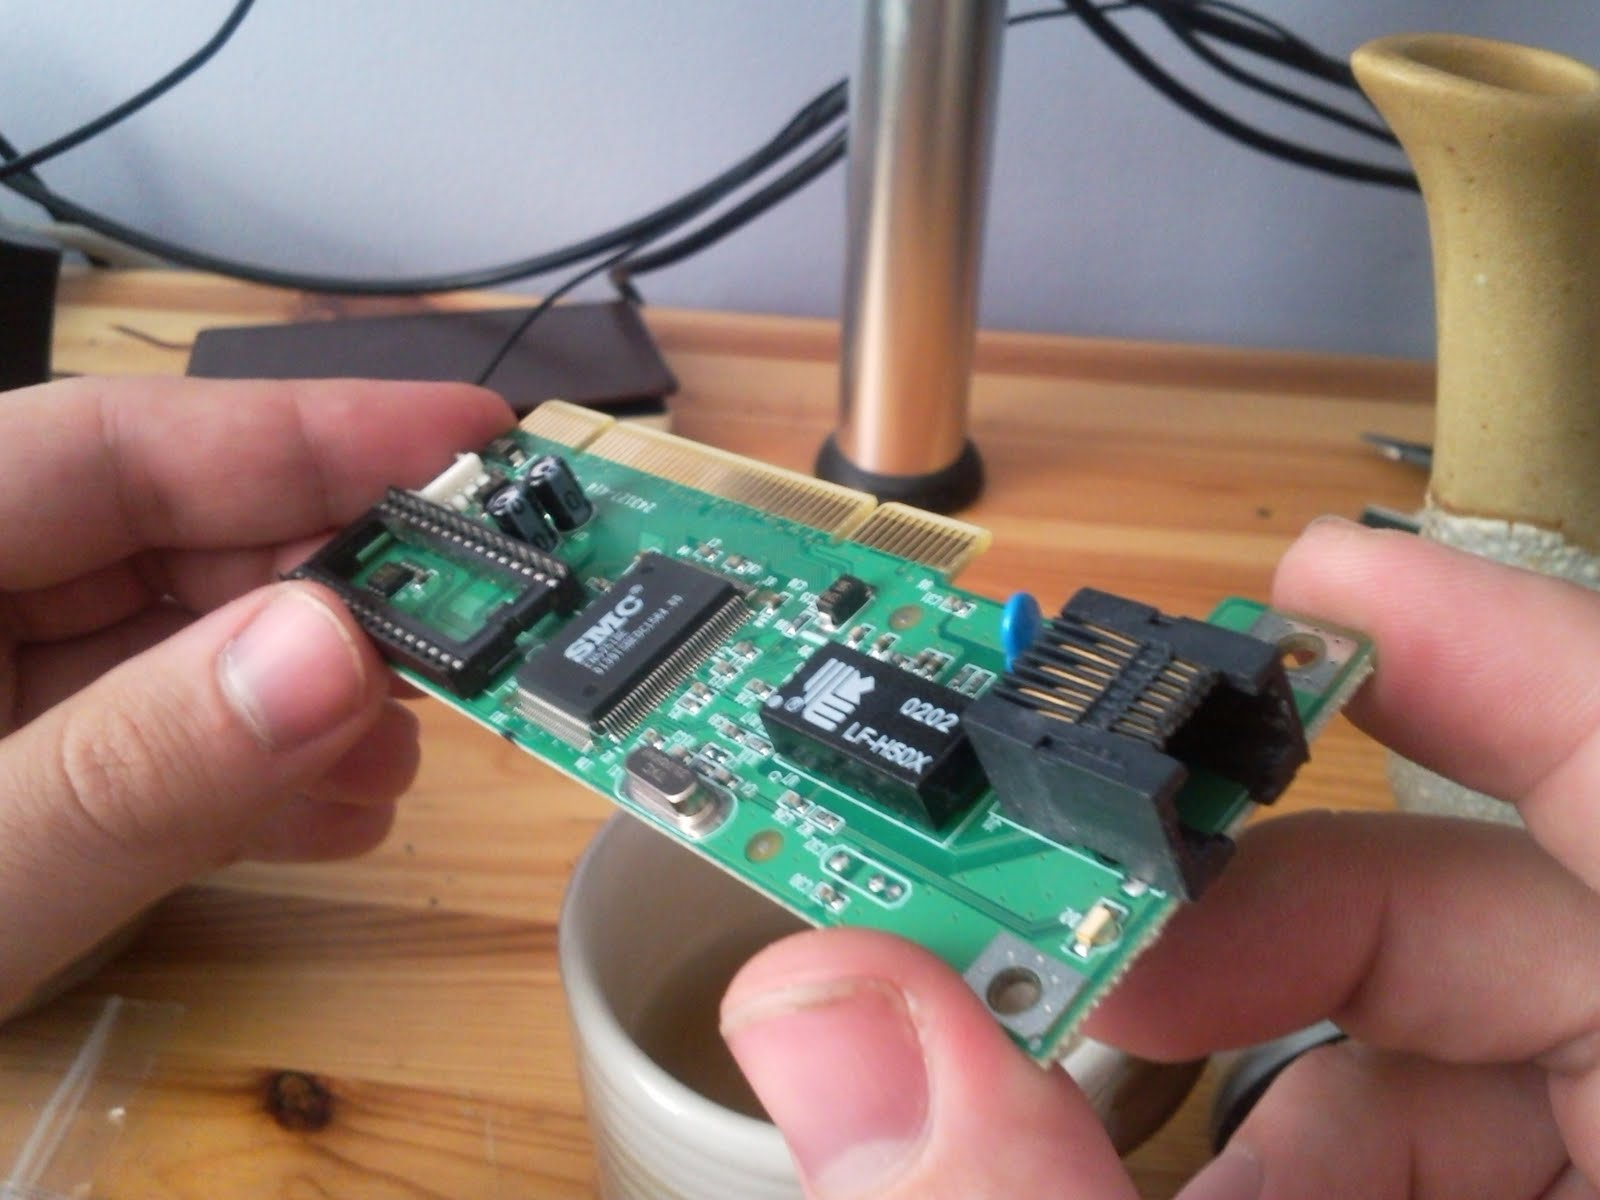 Removing the cover plate of the network card